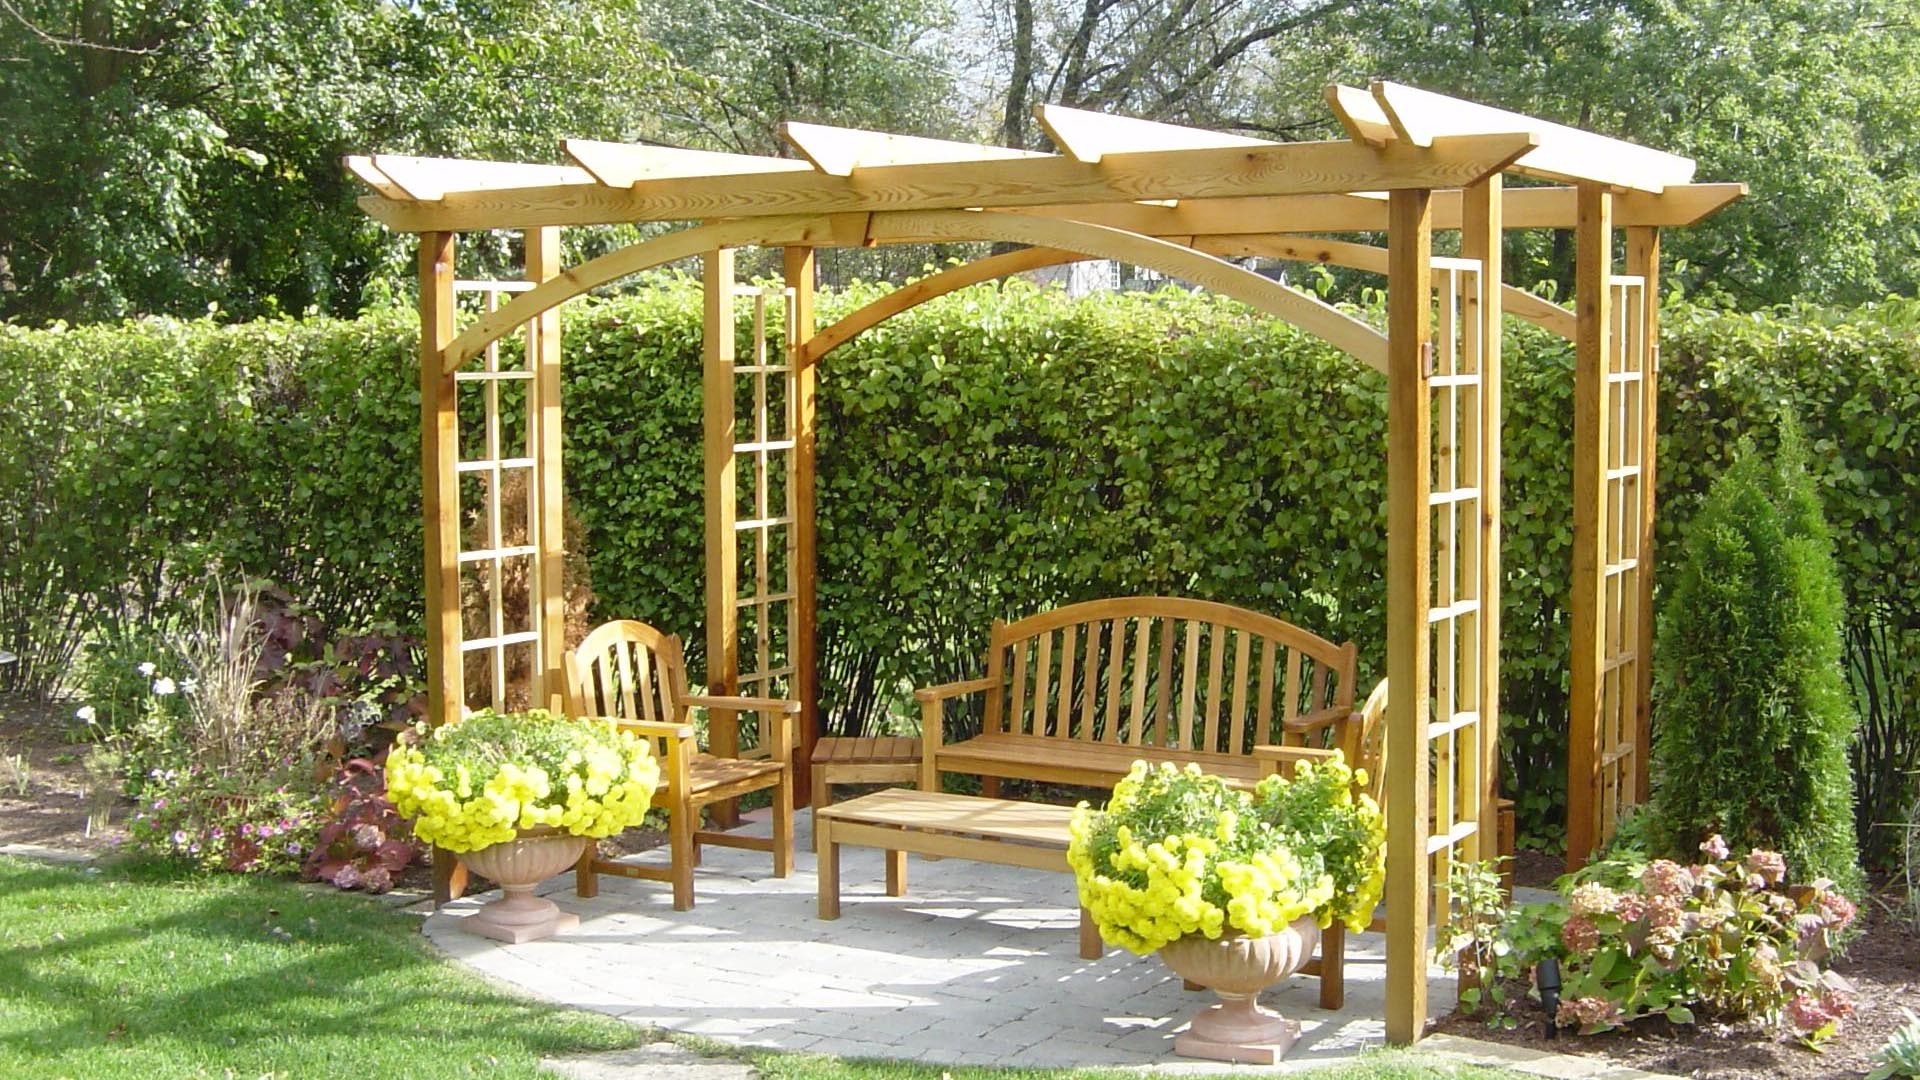 Wooden garden structures abg tree services and hard for Outdoor structures